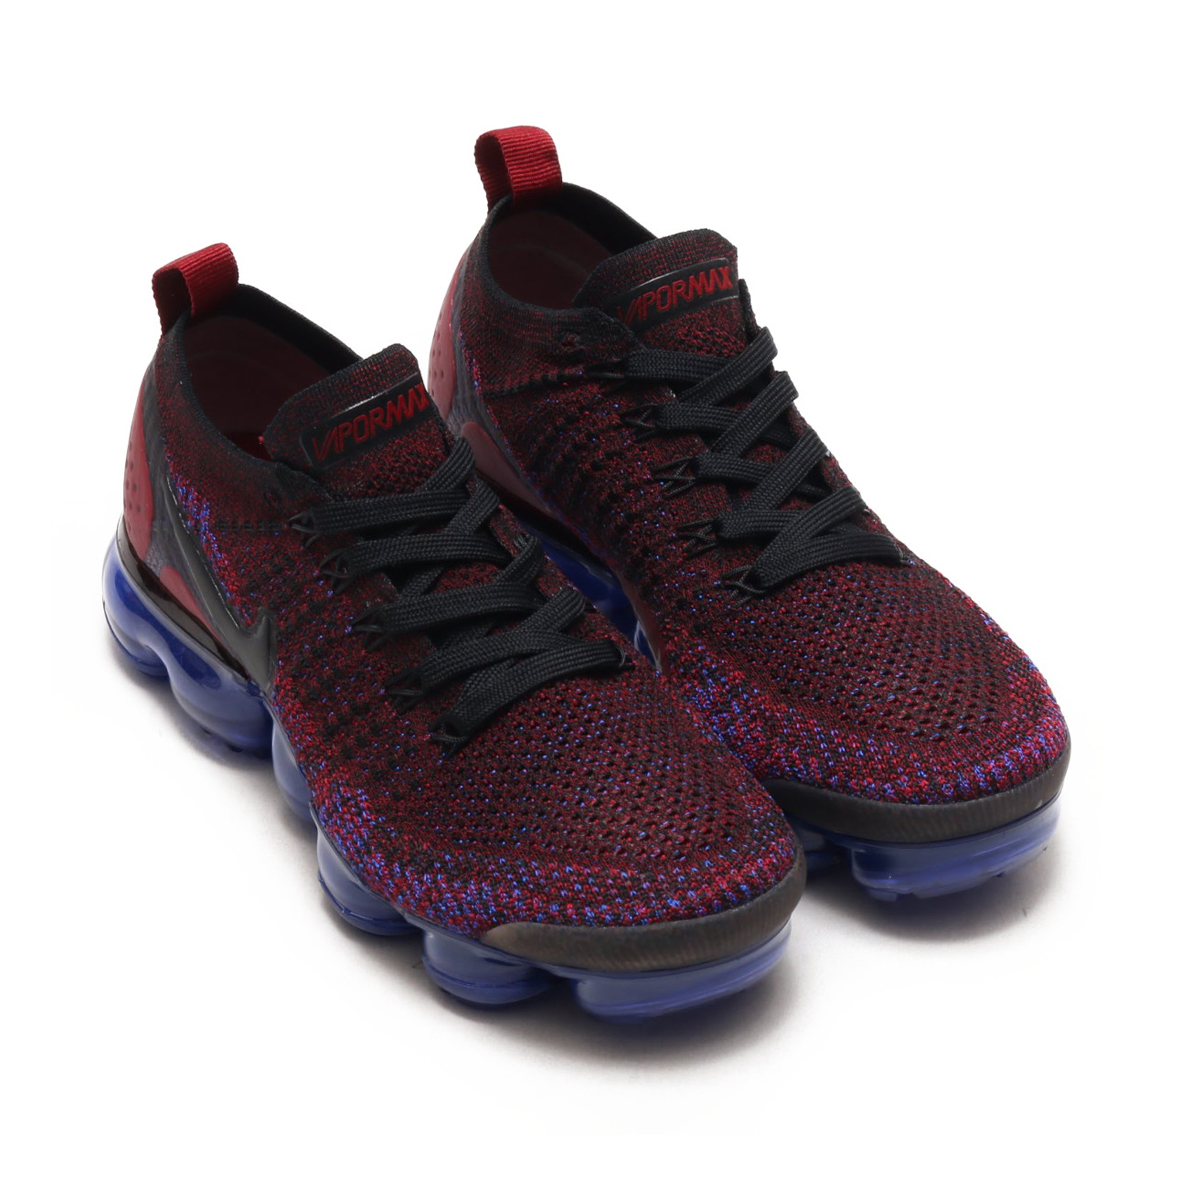 63c65352cc3f1 NIKE WMNS AIR VAPORMAX FLYKNIT 2 (Nike women air vapor max fried food knit 2)  (BLACK BLACK-TEAM RED-RACER BLUE) 18SU-S